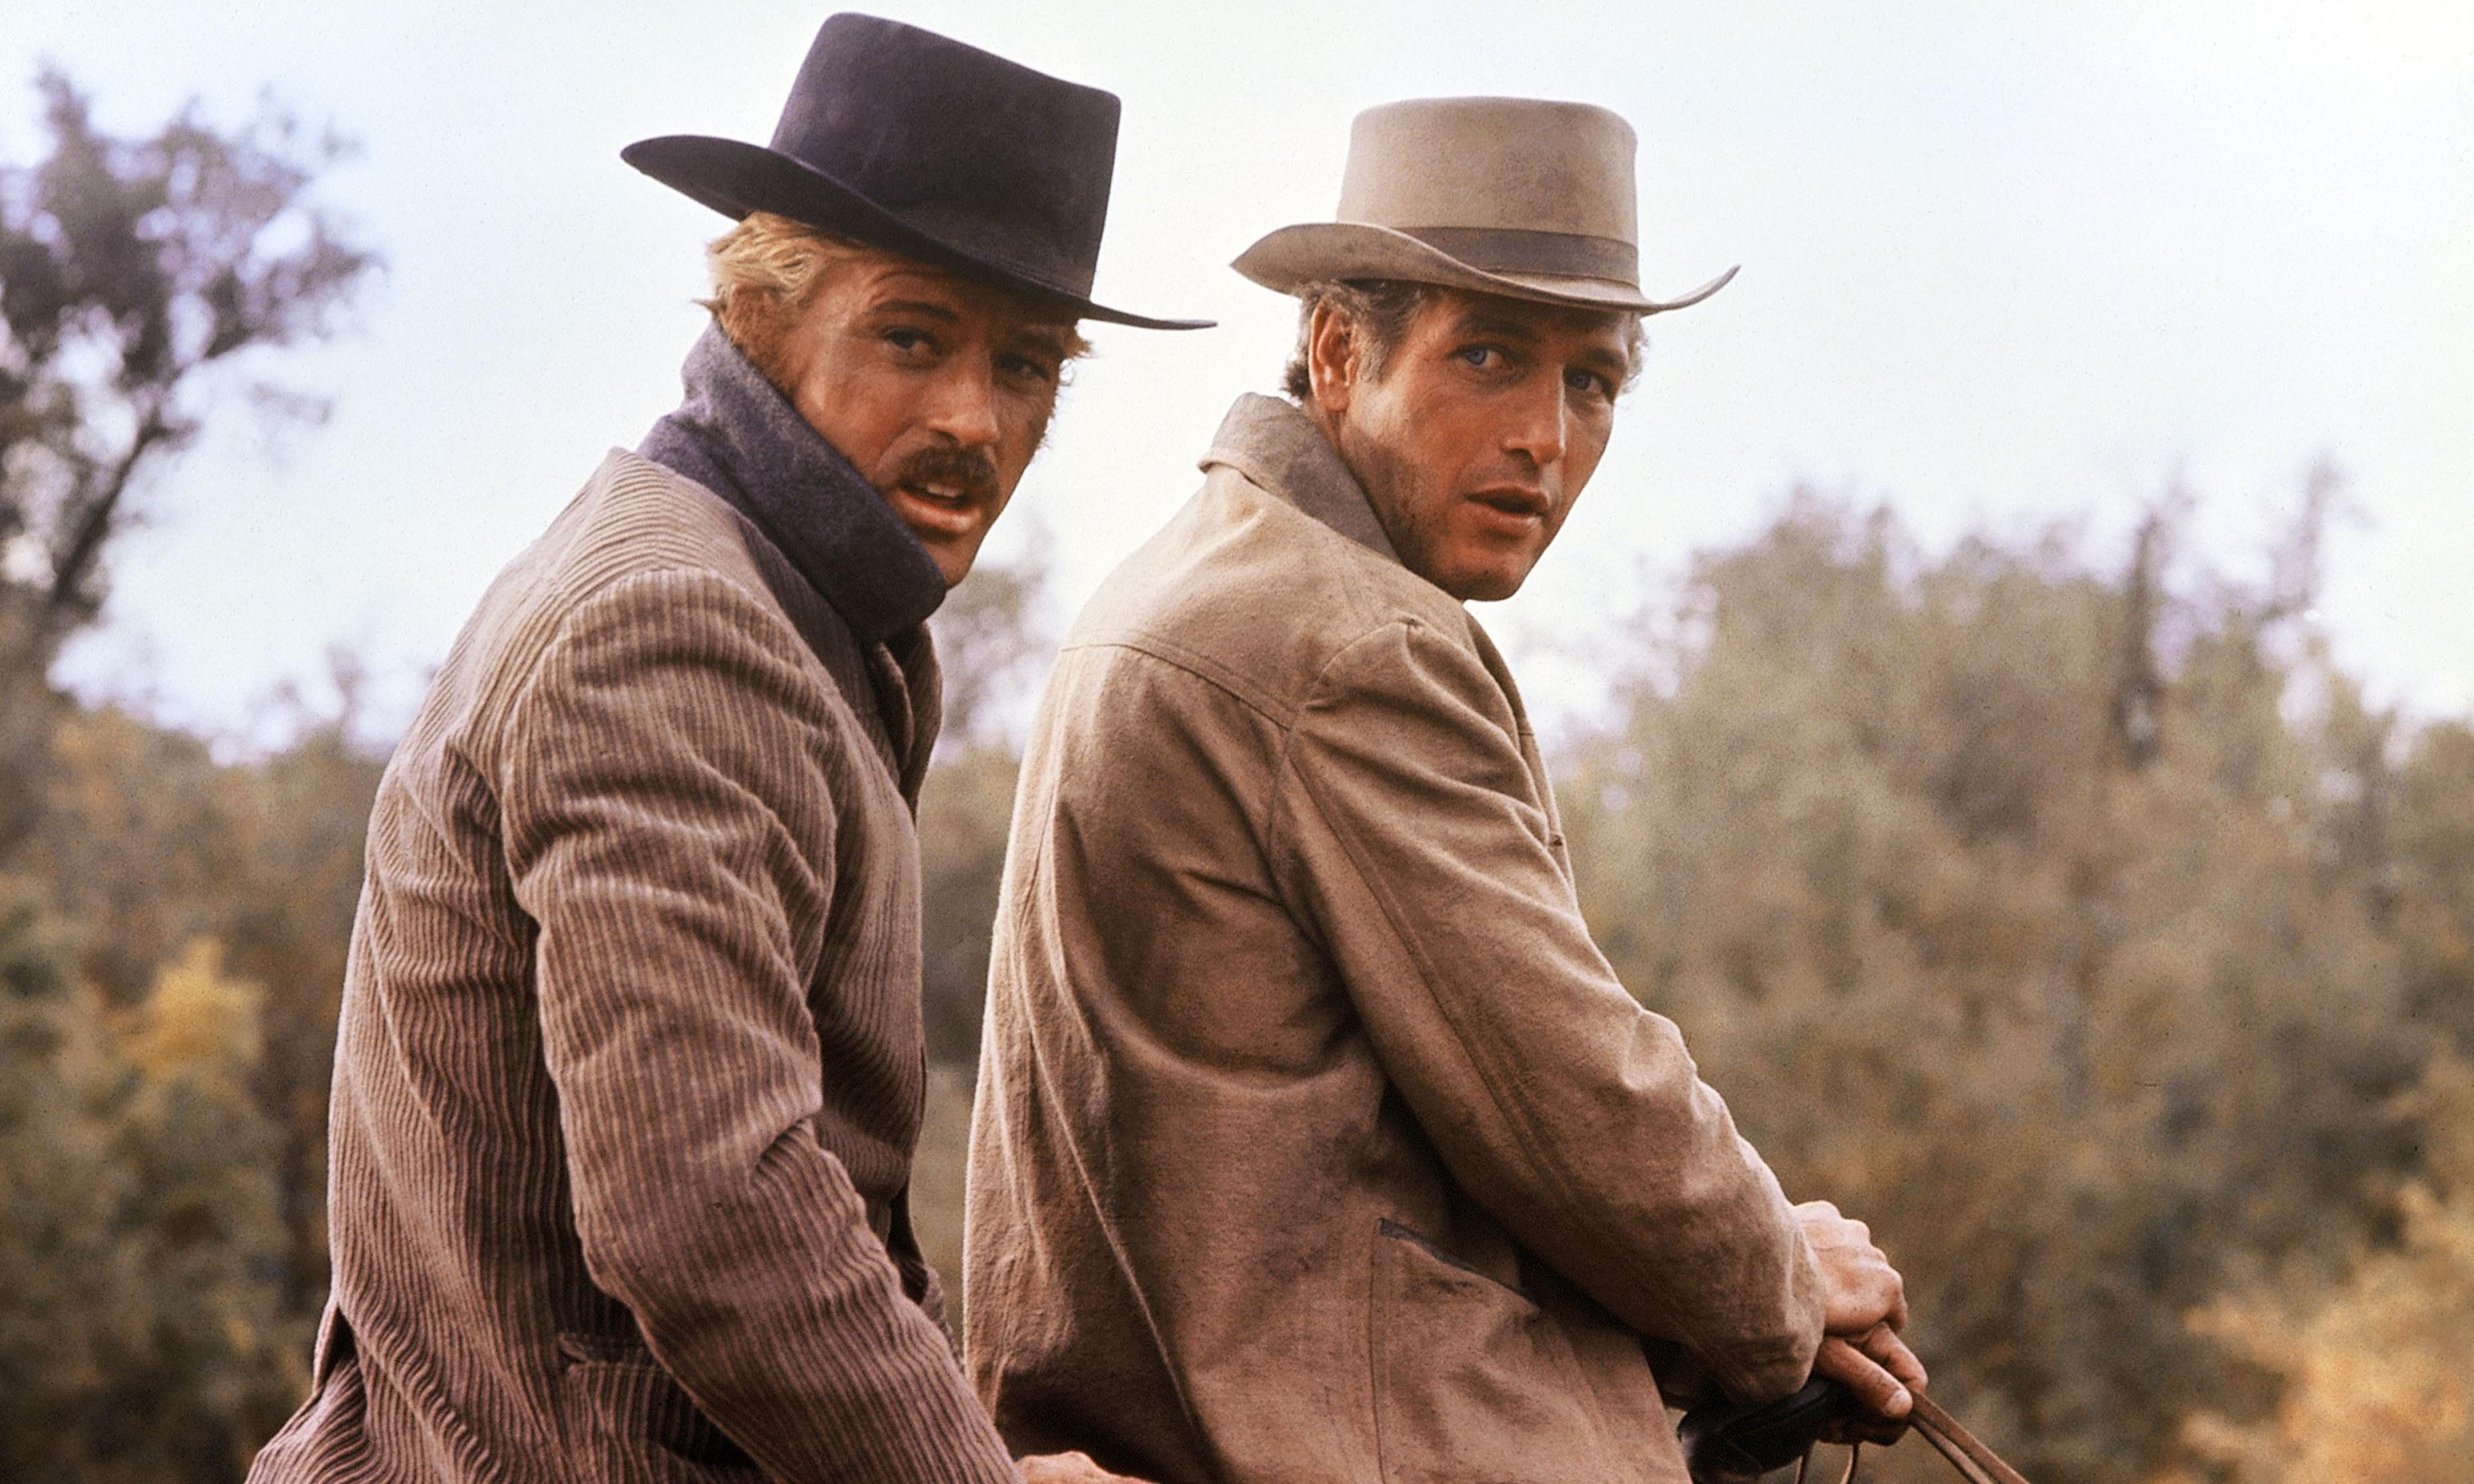 Butch Cassidy and the Sundance Kid at 50: their charm lives on